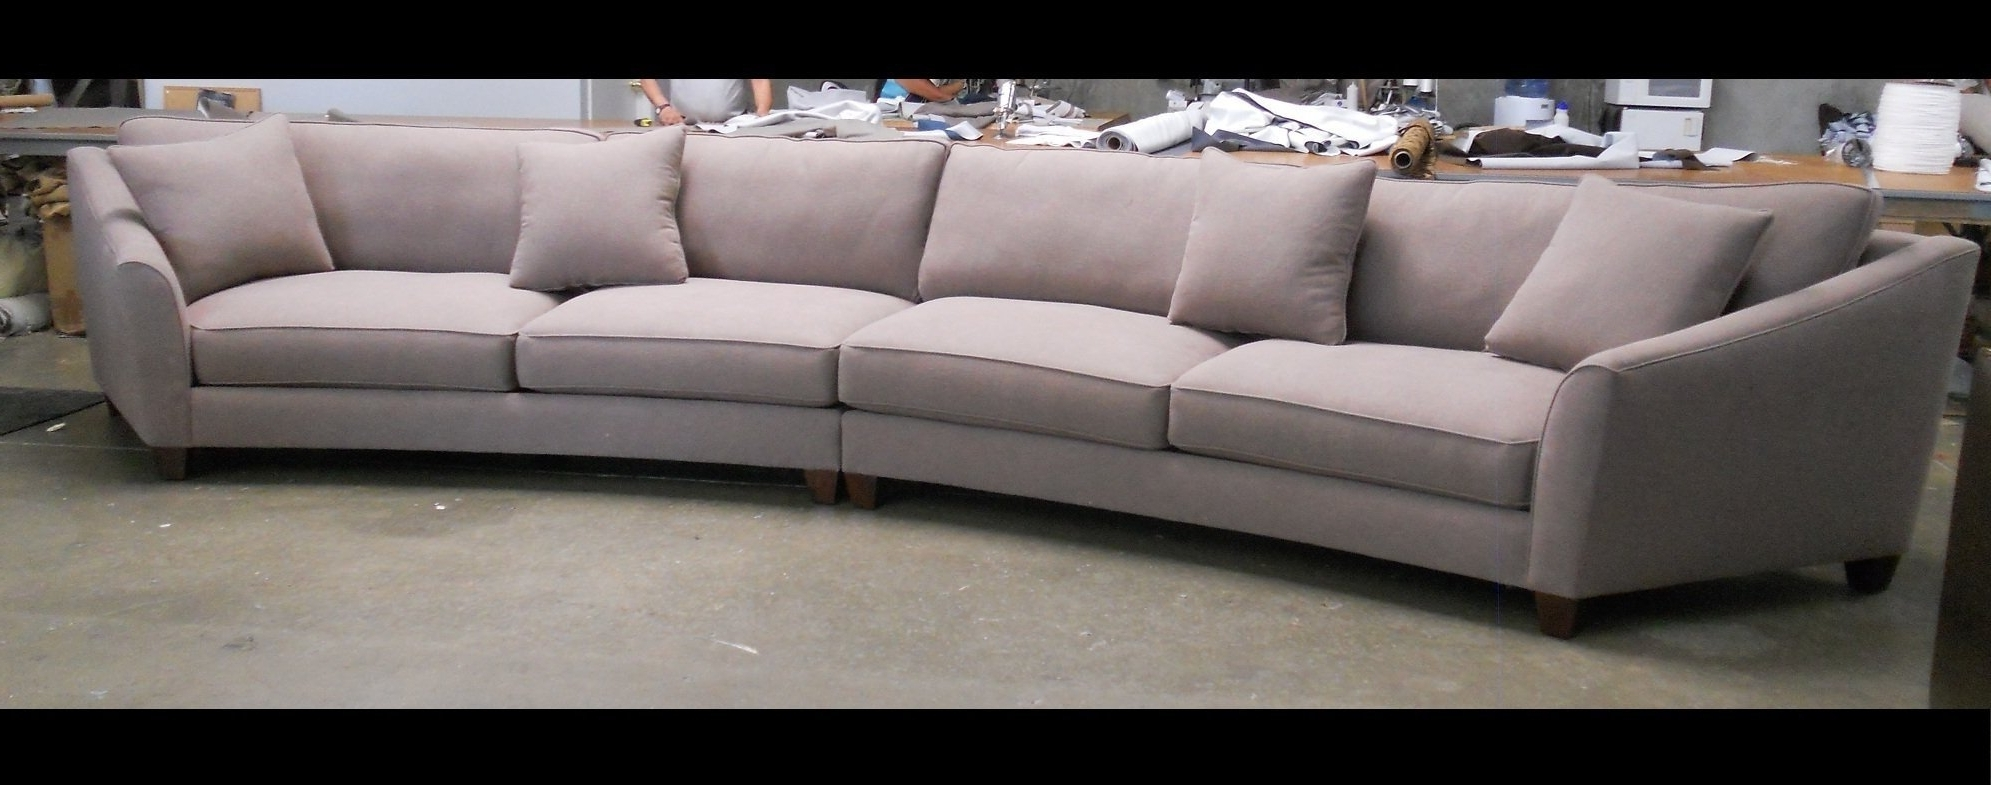 Furniture : 5060 Recliner Sectional Sofa Costco $699 Corner Couch With 2018 80X80 Sectional Sofas (View 2 of 15)